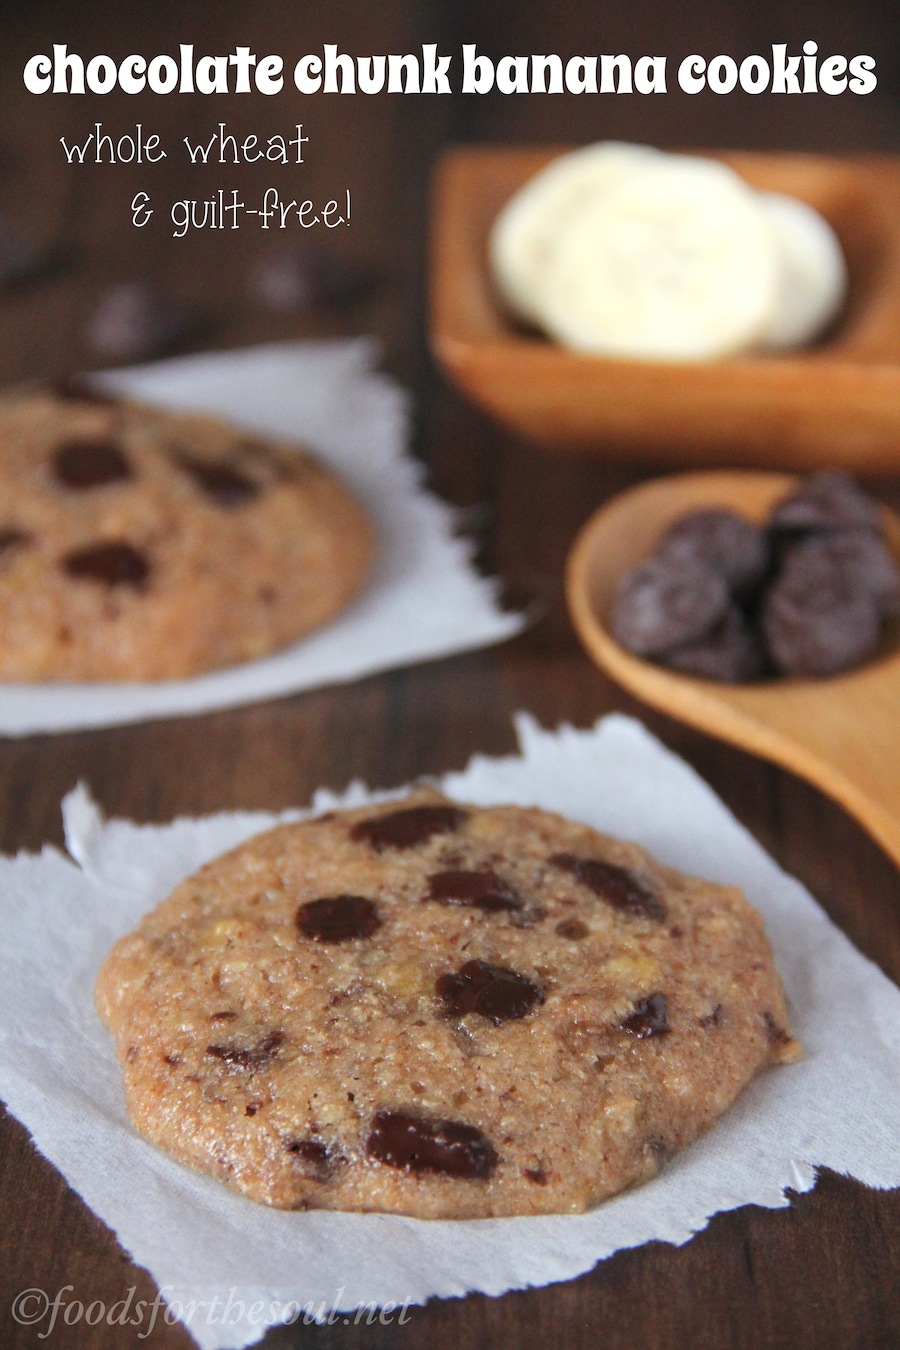 Chocolate Chunk Banana Cookies